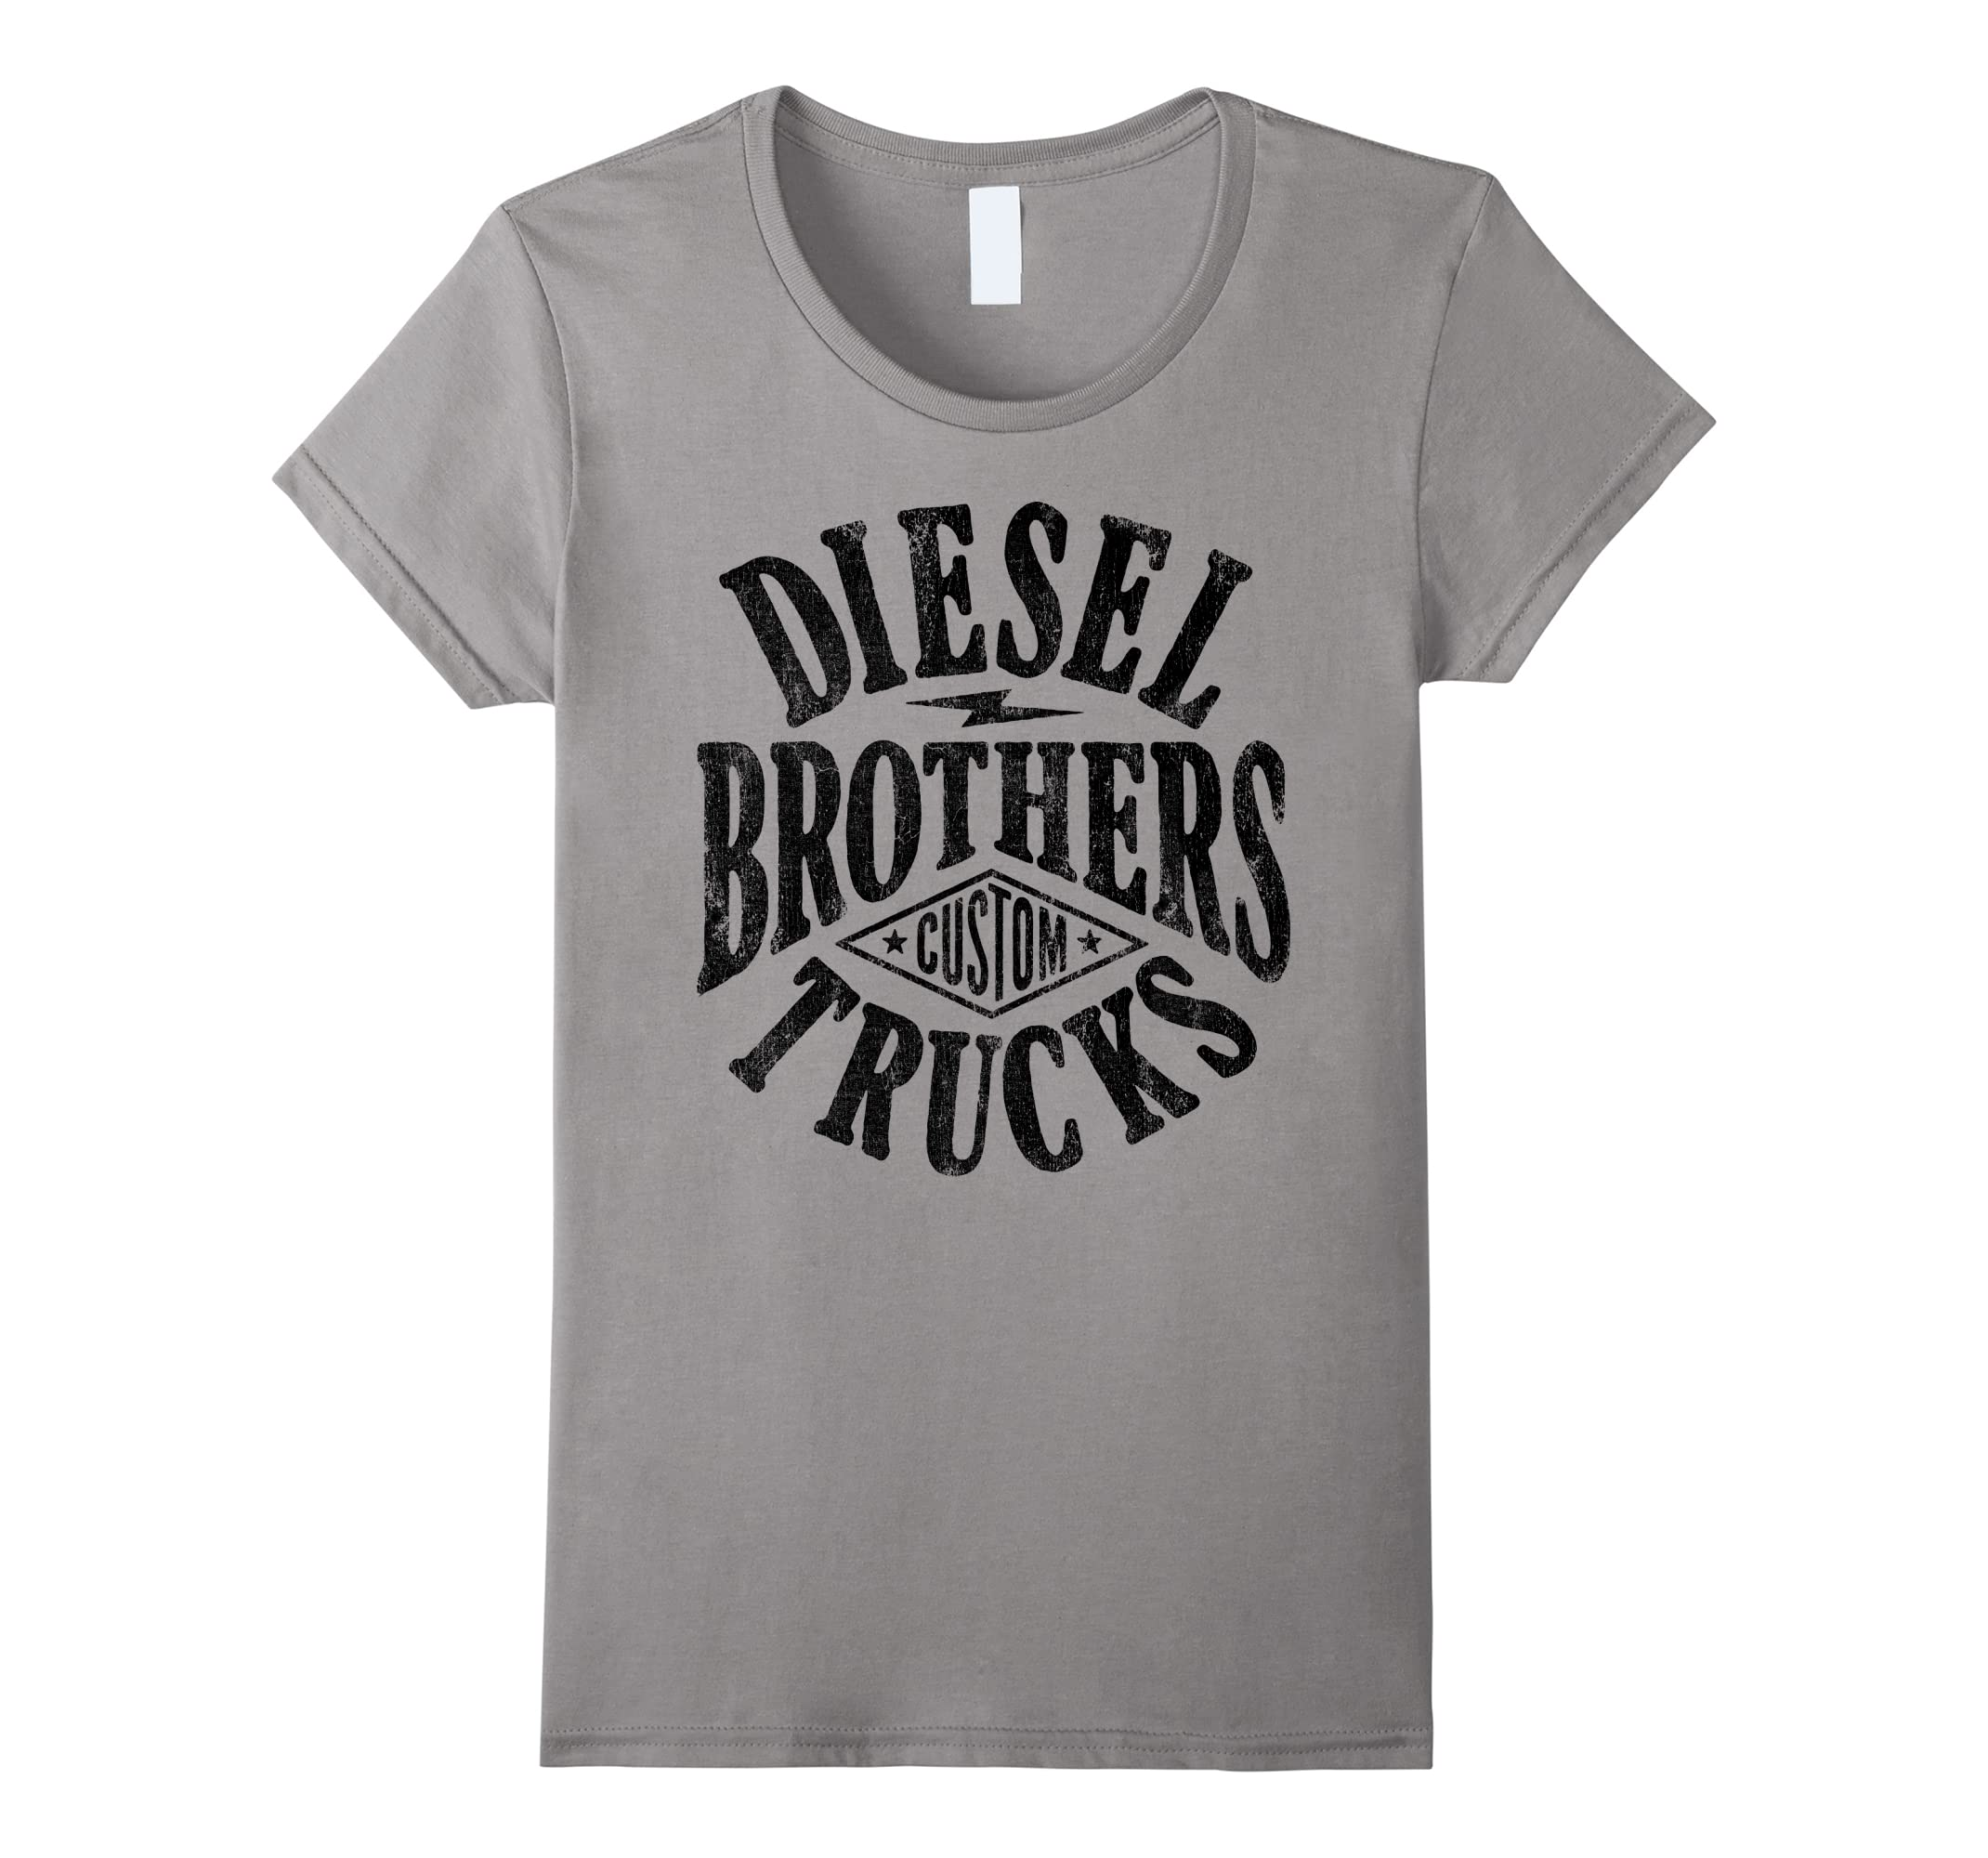 18e48a79 Amazon.com: Diesel Brothers Custom Vintage Black Text Graphic T-Shirt:  Clothing